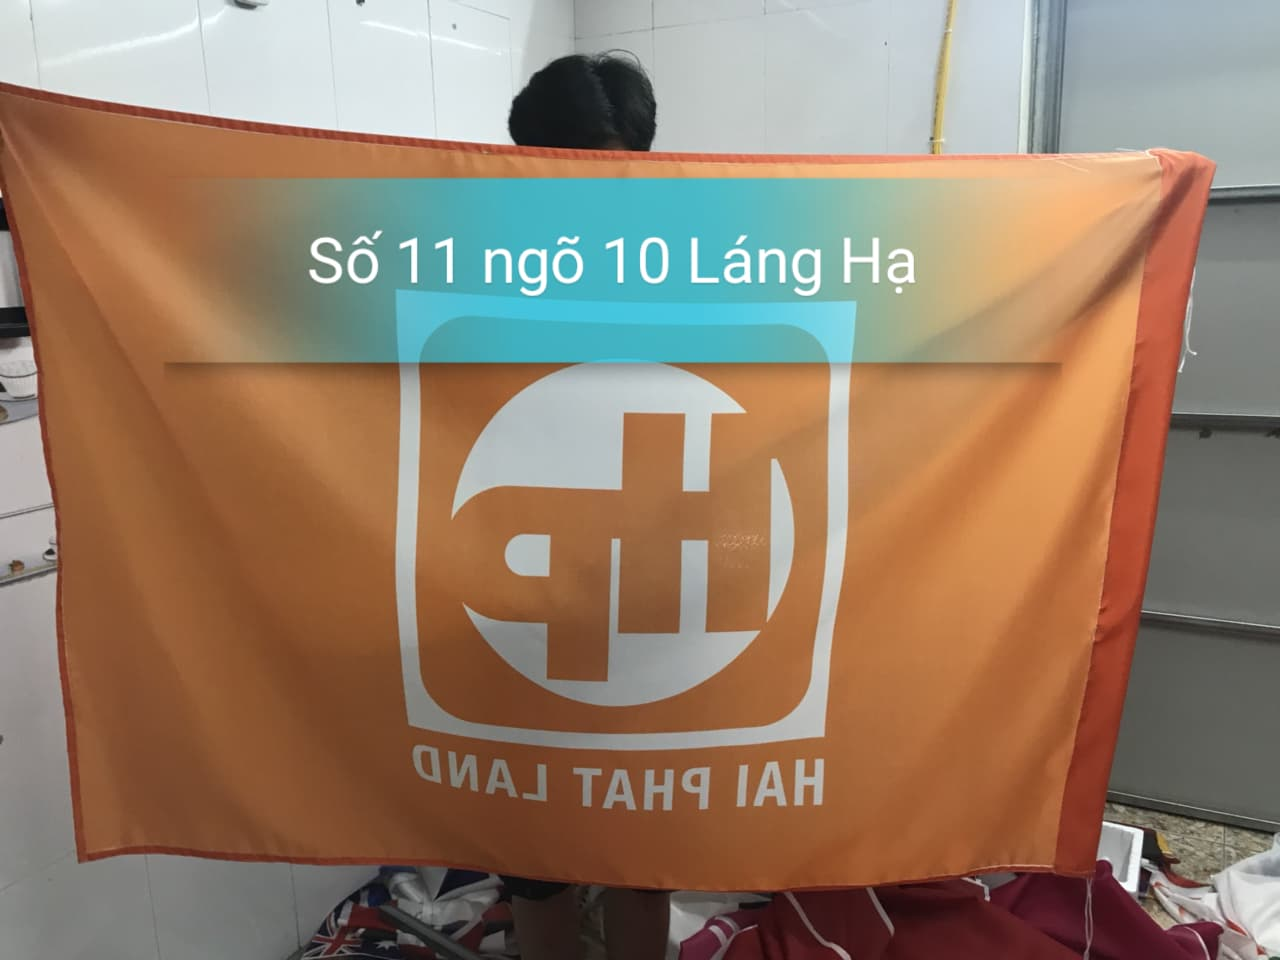 co-cong-ty-10